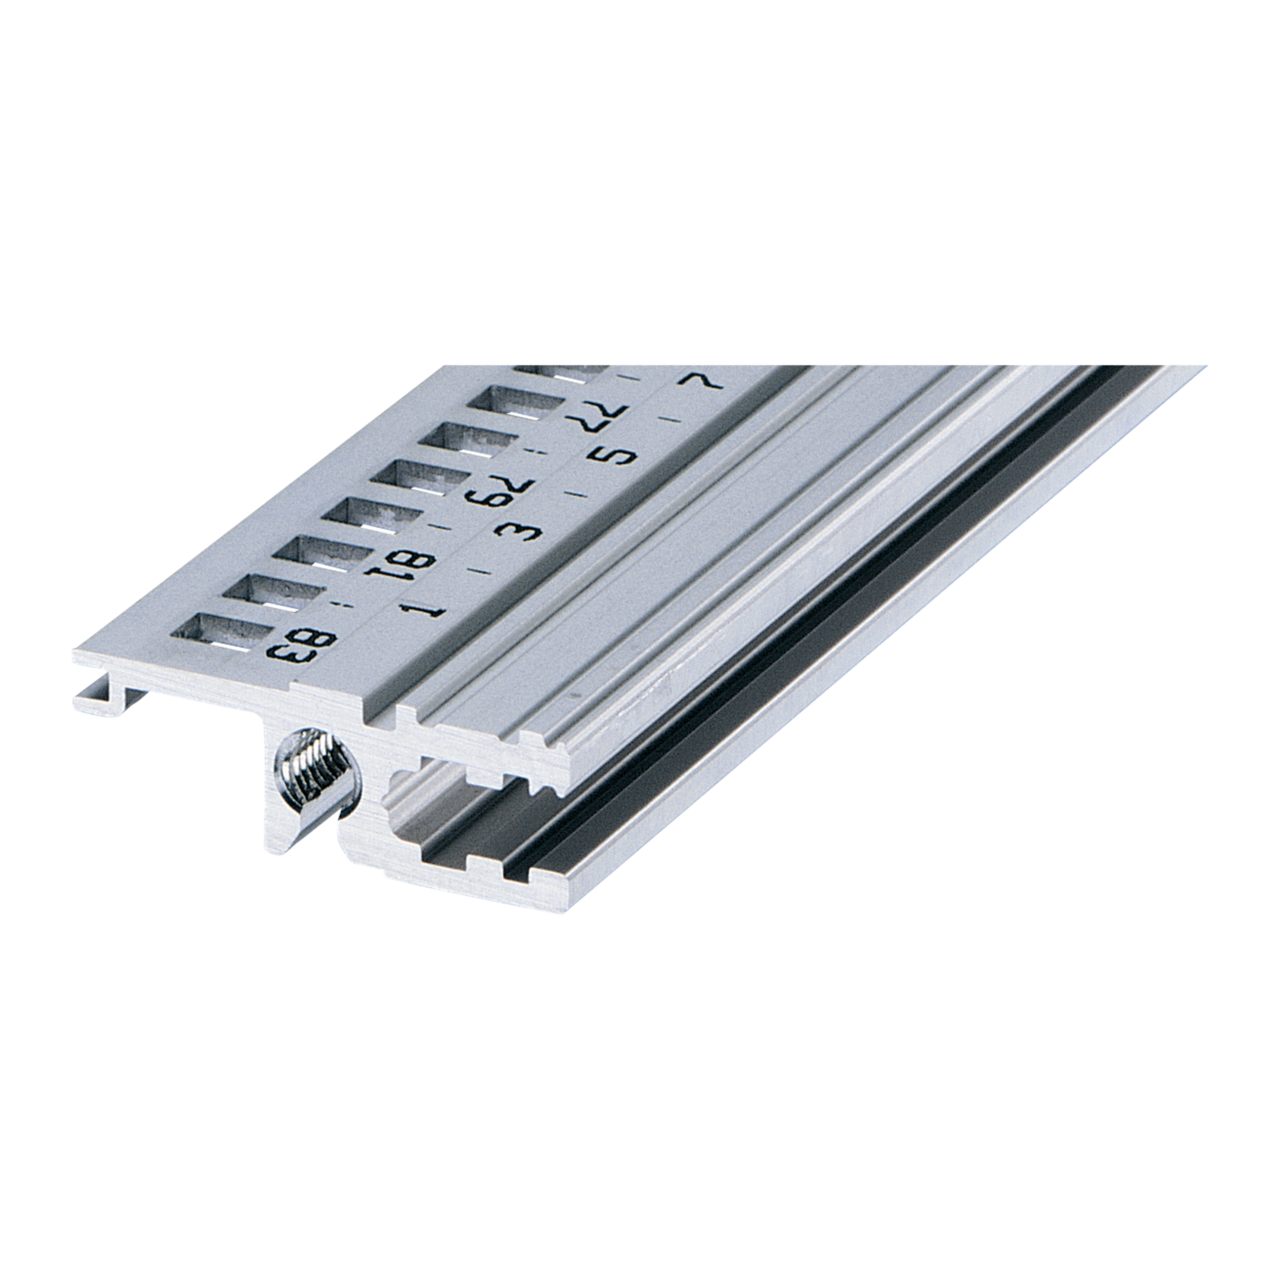 Imagen para Horizontal rail, rear, type L-VT, light, recessed installation de Schroff - Norteamérica